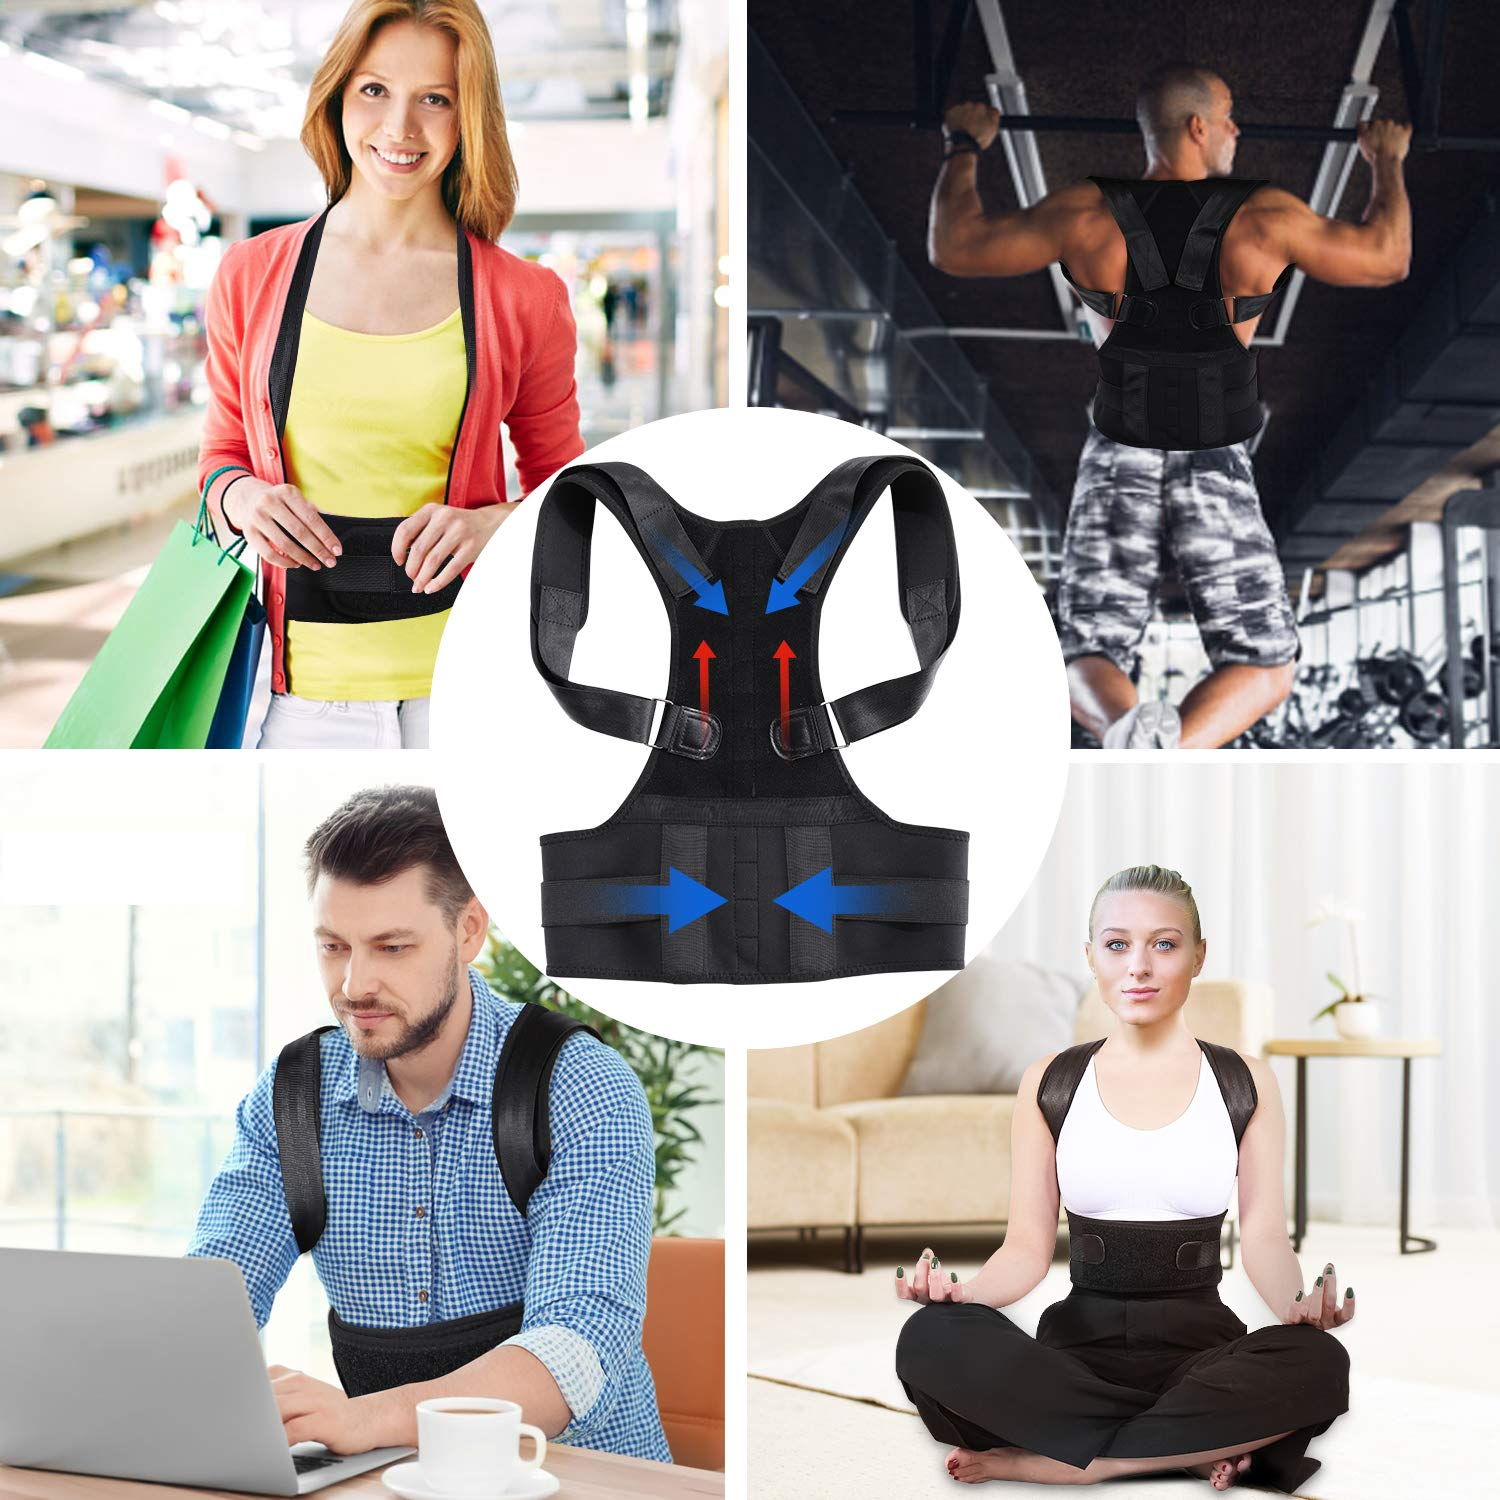 Lukemoz Posture Corrector for Men and Women, Adjustable Shoulder Brace Back Straightener, Comfortable Back Brace for Back Pain Relief, Improves Posture(S)